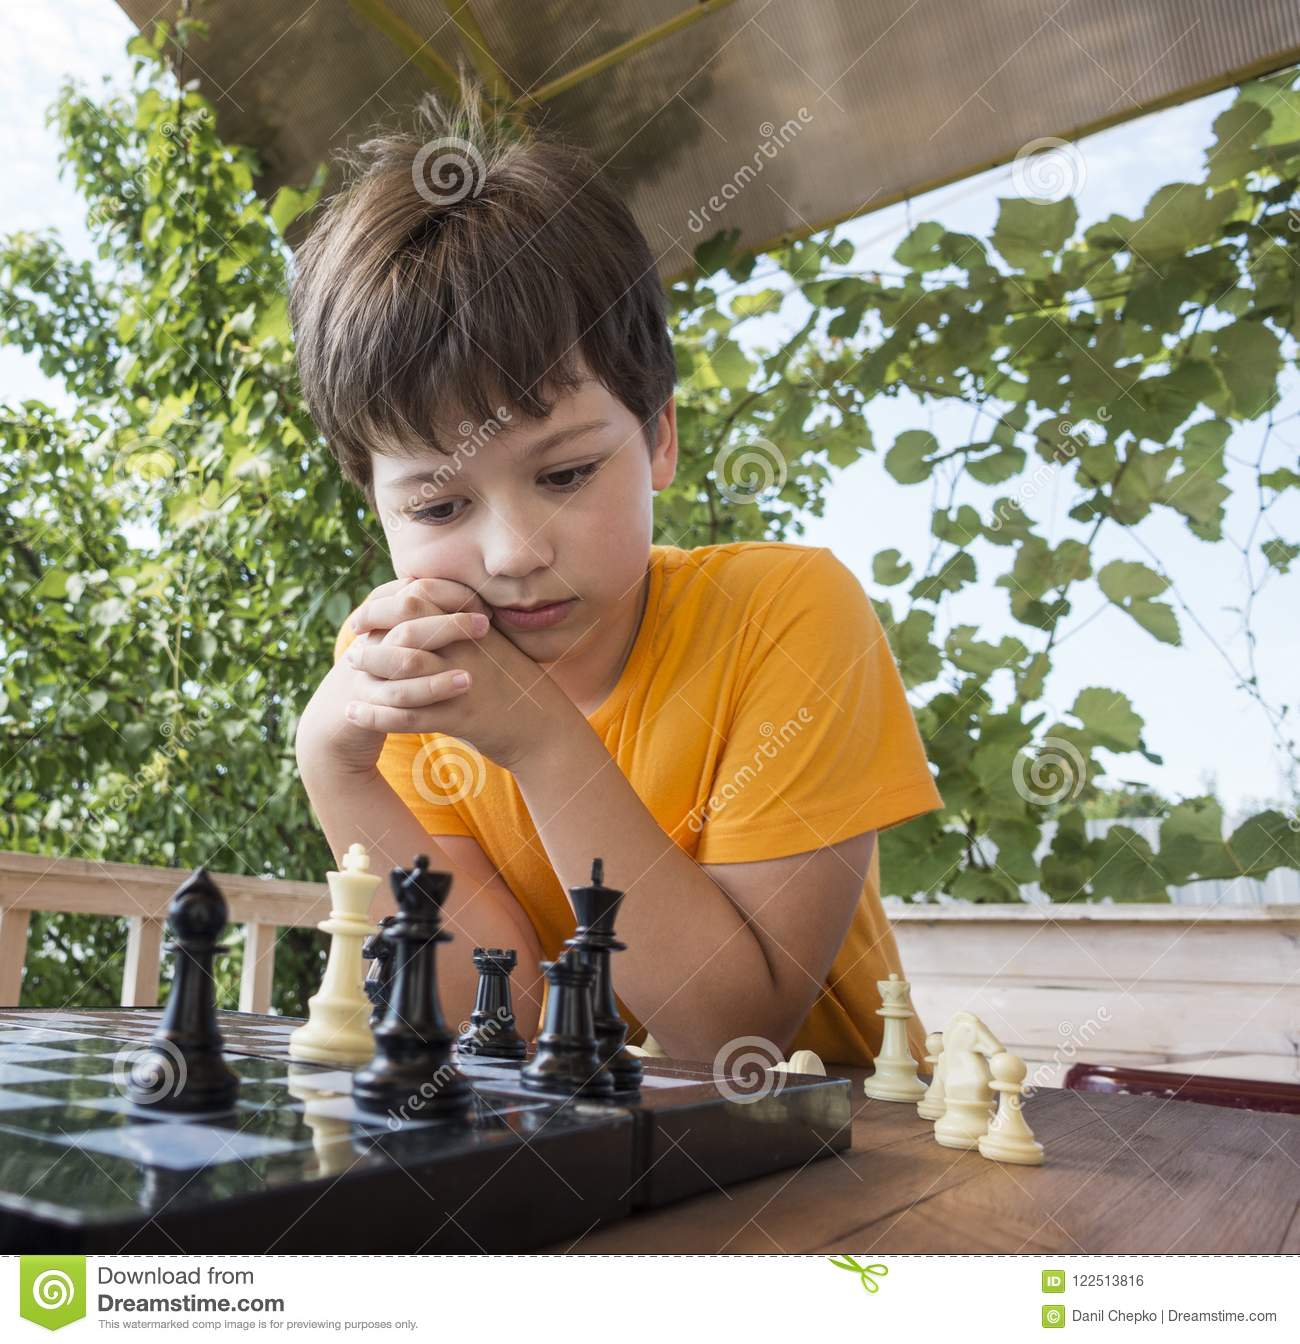 Download Child Playing Chess Outdors, Young Boy Making A Move Stock Photo - Image of learn, human: 122513816